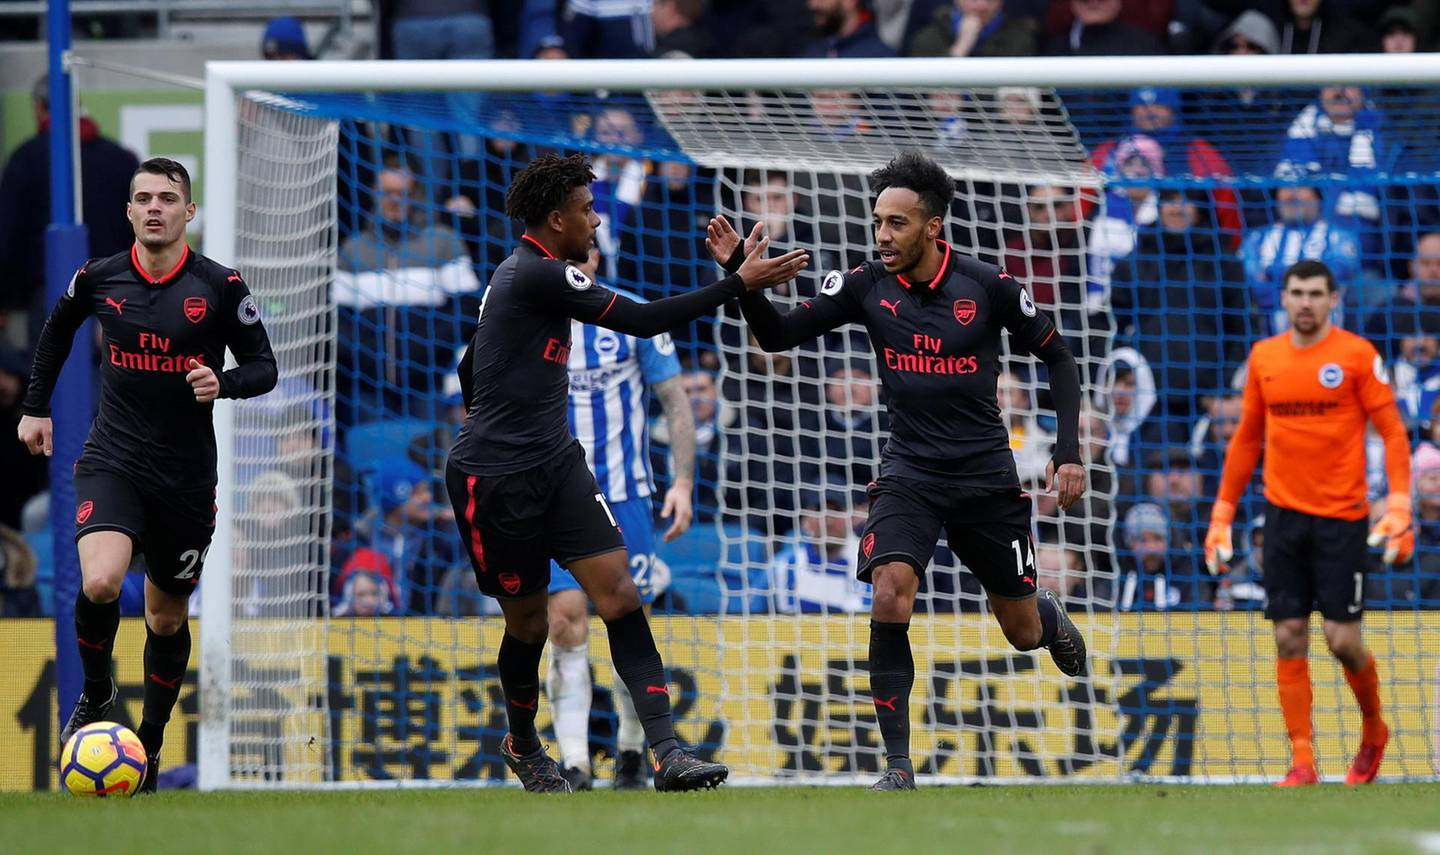 """Soccer Football - Premier League - Brighton & Hove Albion vs Arsenal - The American Express Community Stadium, Brighton, Britain - March 4, 2018   Arsenal's Pierre-Emerick Aubameyang celebrates scoring their first goal with Alex Iwobi    REUTERS/Eddie Keogh    EDITORIAL USE ONLY. No use with unauthorized audio, video, data, fixture lists, club/league logos or """"live"""" services. Online in-match use limited to 75 images, no video emulation. No use in betting, games or single club/league/player publications.  Please contact your account representative for further details."""